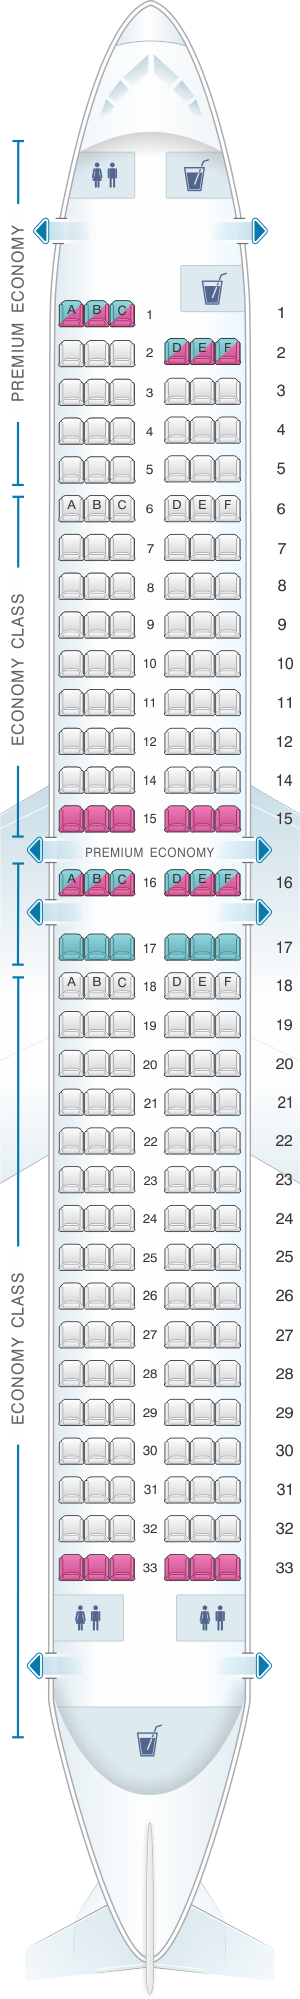 Seat map for Ryanair Boeing B737 800